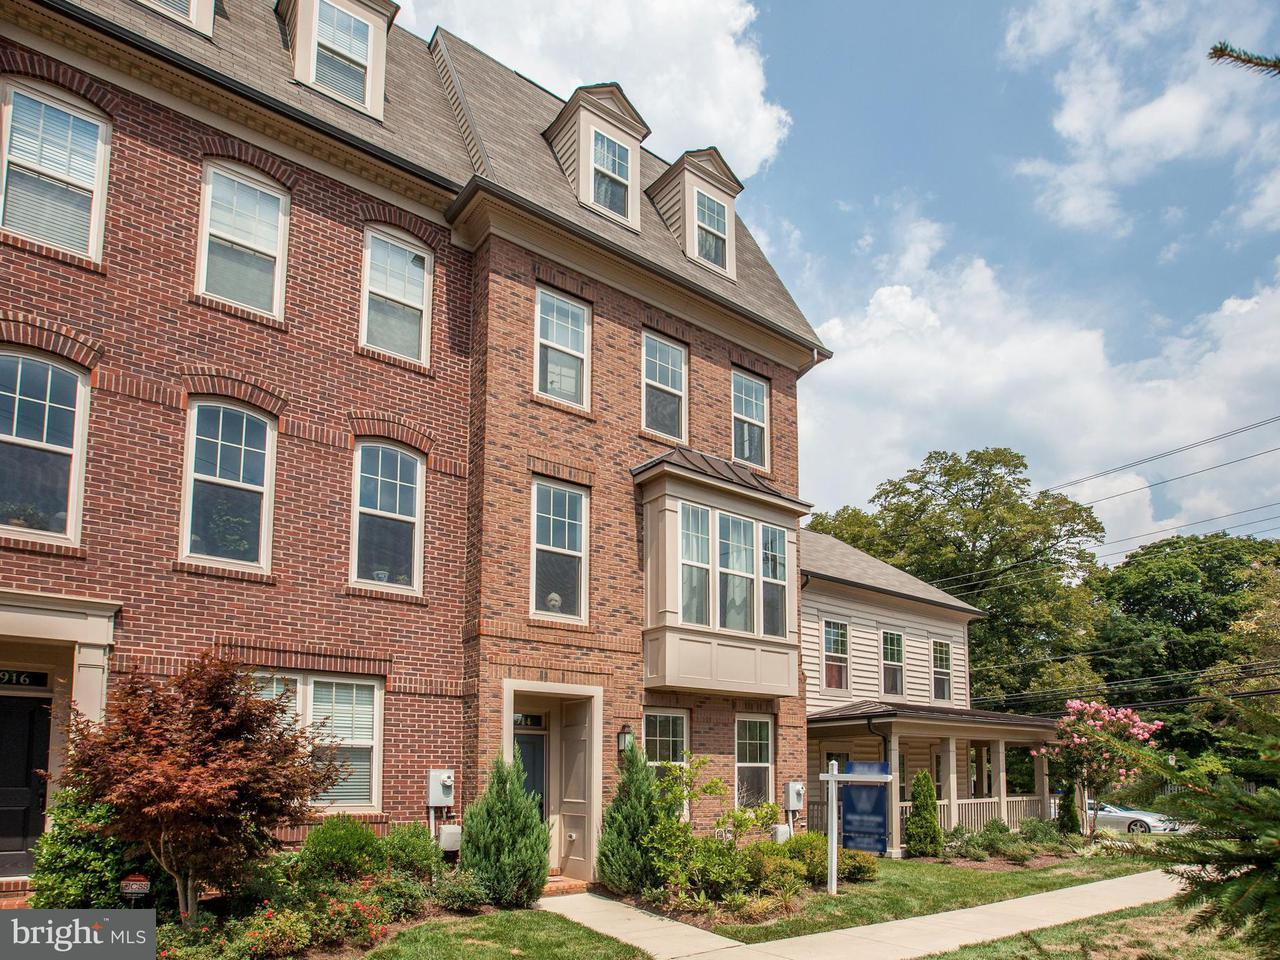 Townhouse for Sale at 15914 Chieftain Avenue 15914 Chieftain Avenue Rockville, Maryland 20855 United States